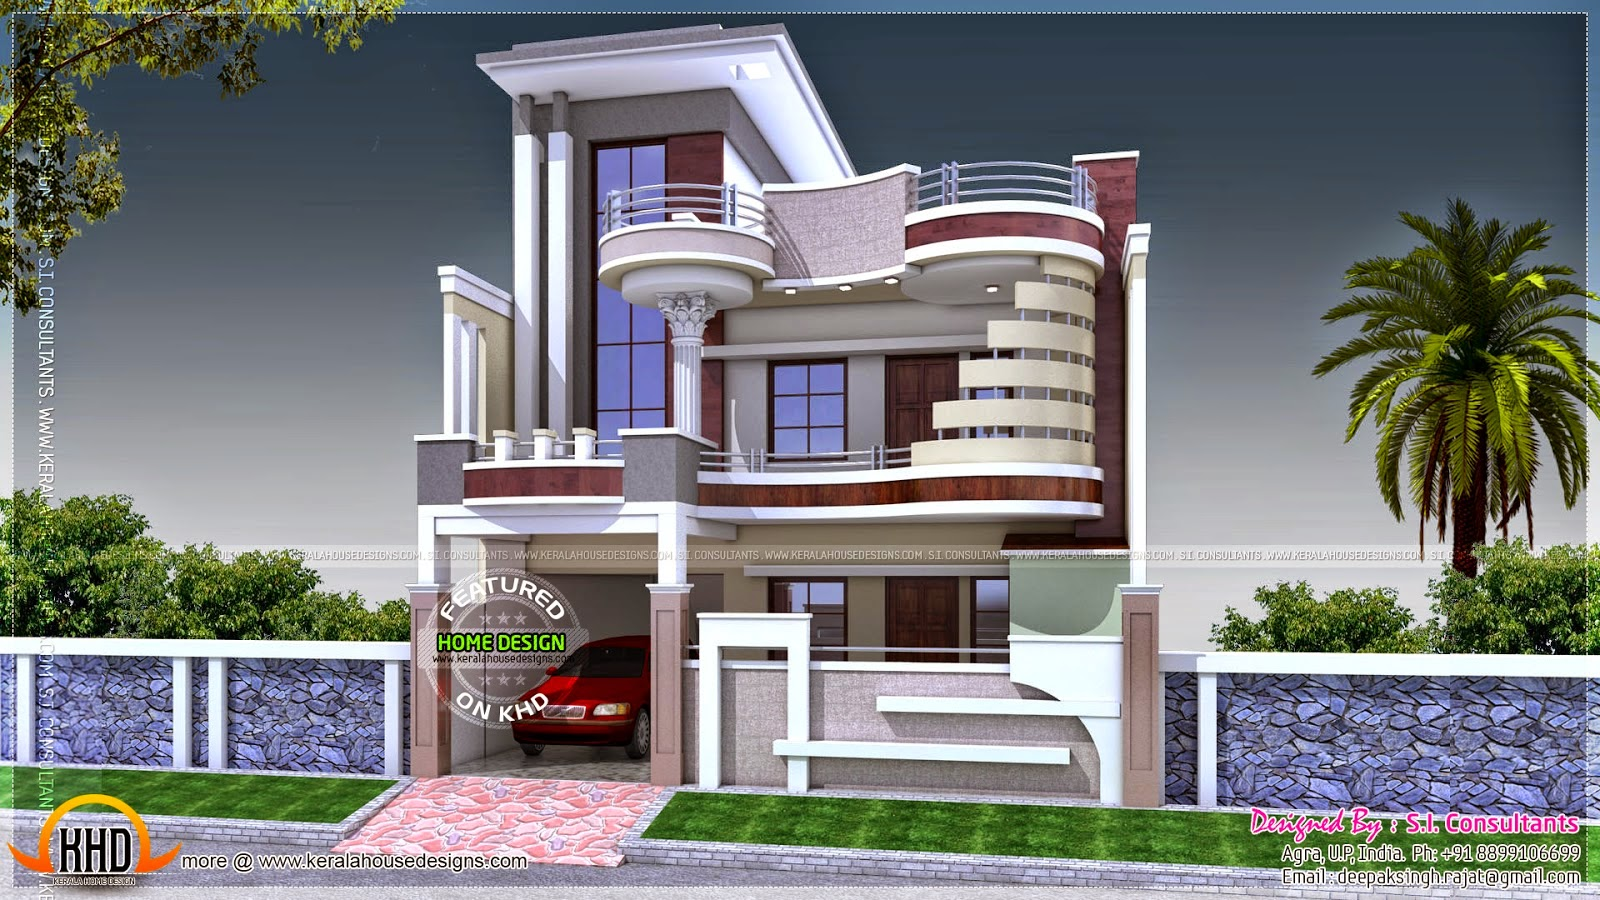 Tropicalizer indian house design for Indian house outlook design